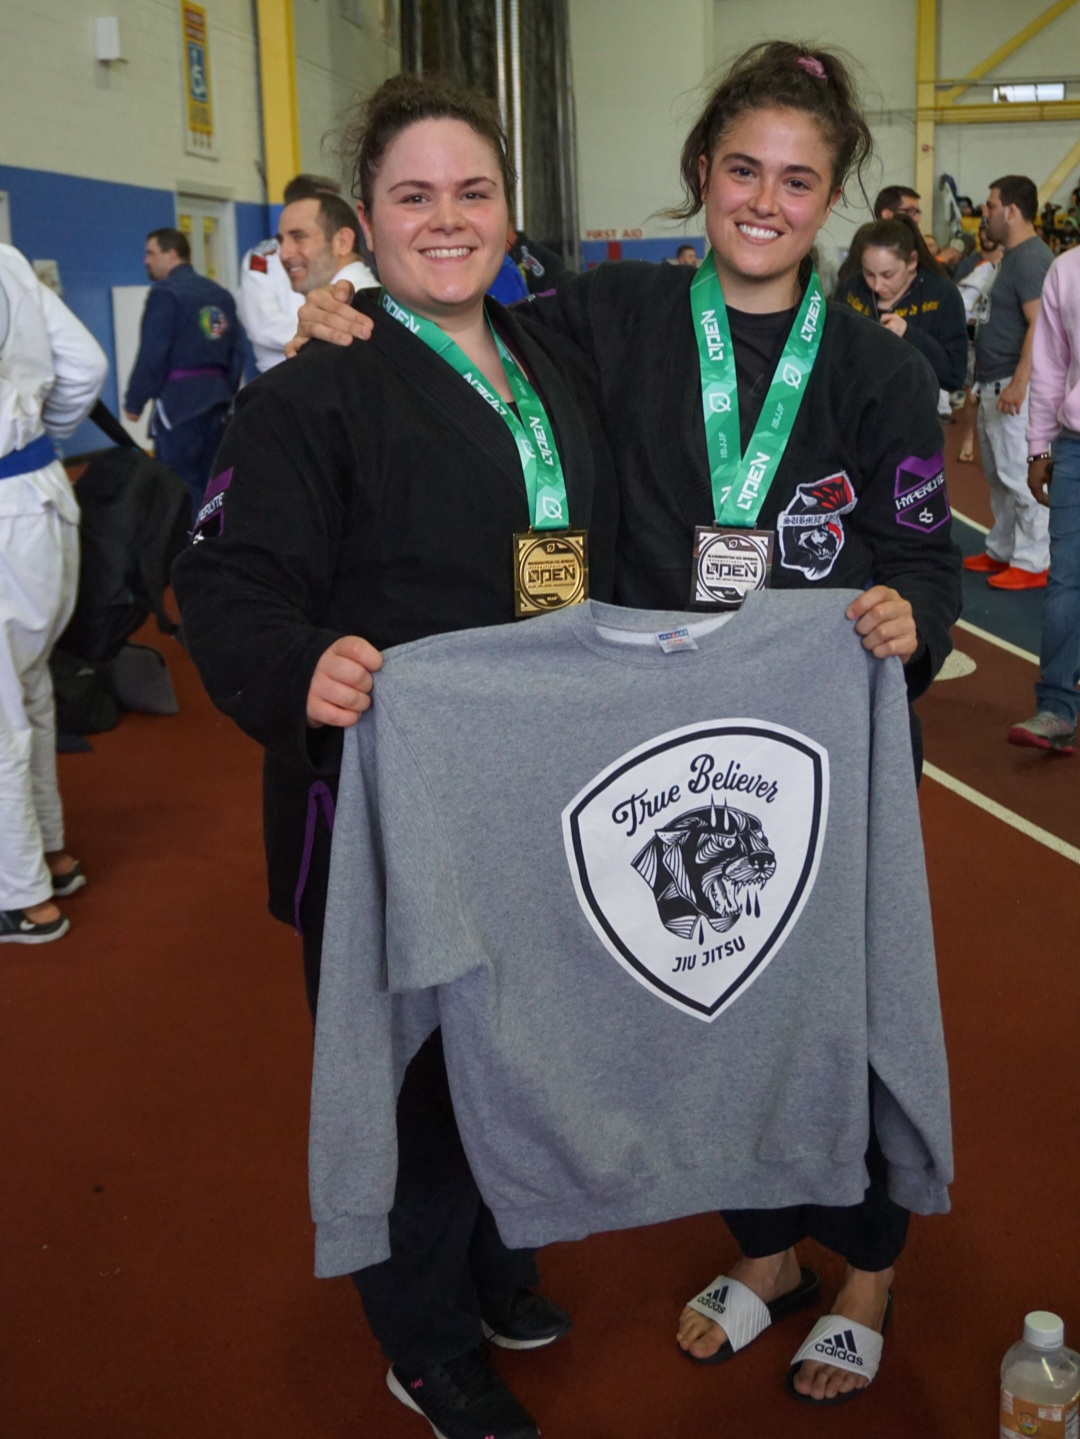 Sewar Abunuwar (left) earned first place in her division, and Allie Bolea (right) earned second place, following hard-fought rounds.